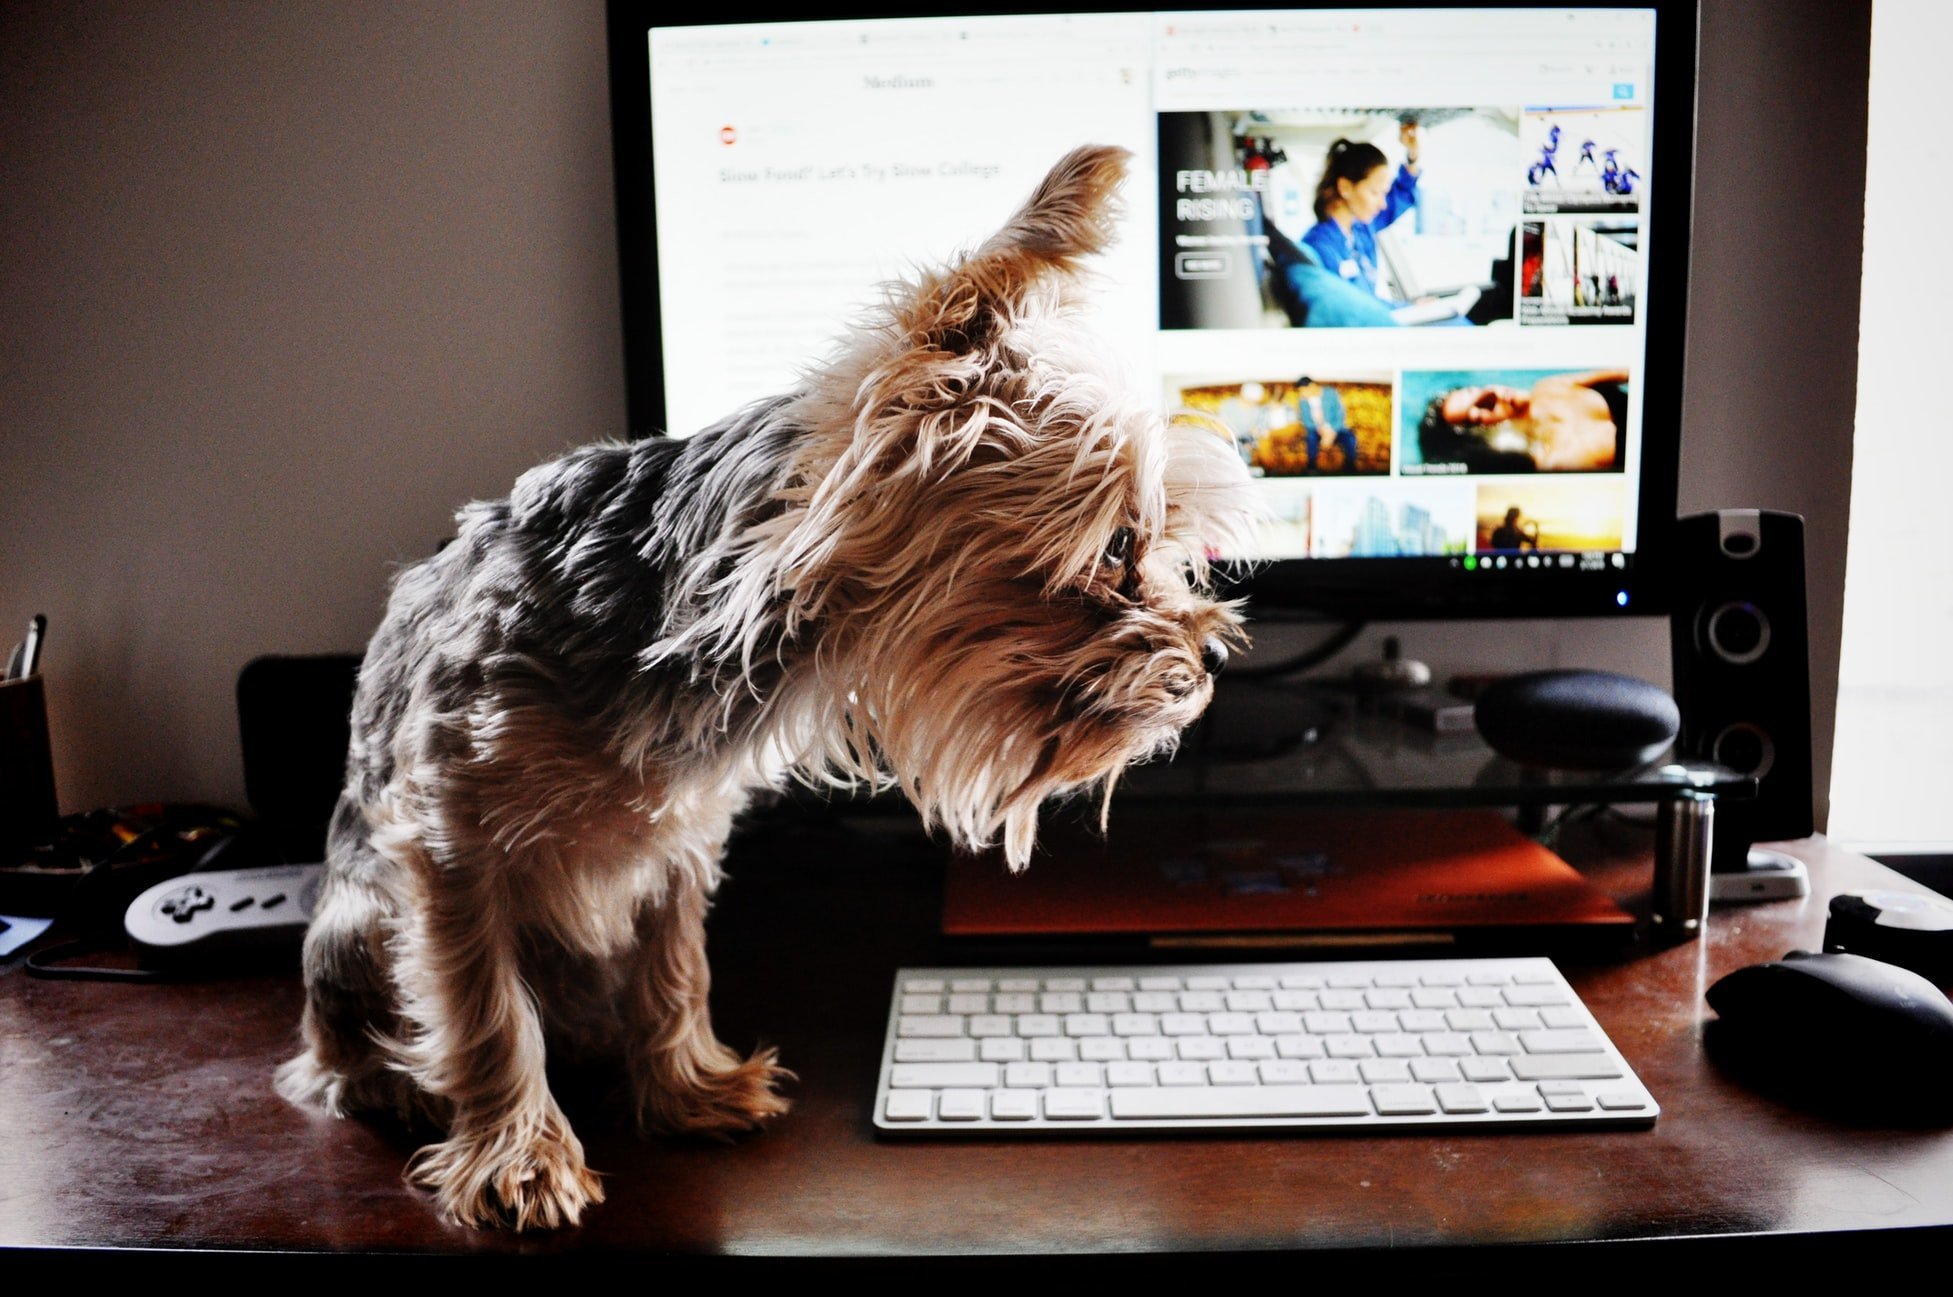 Can dogs see computer screens